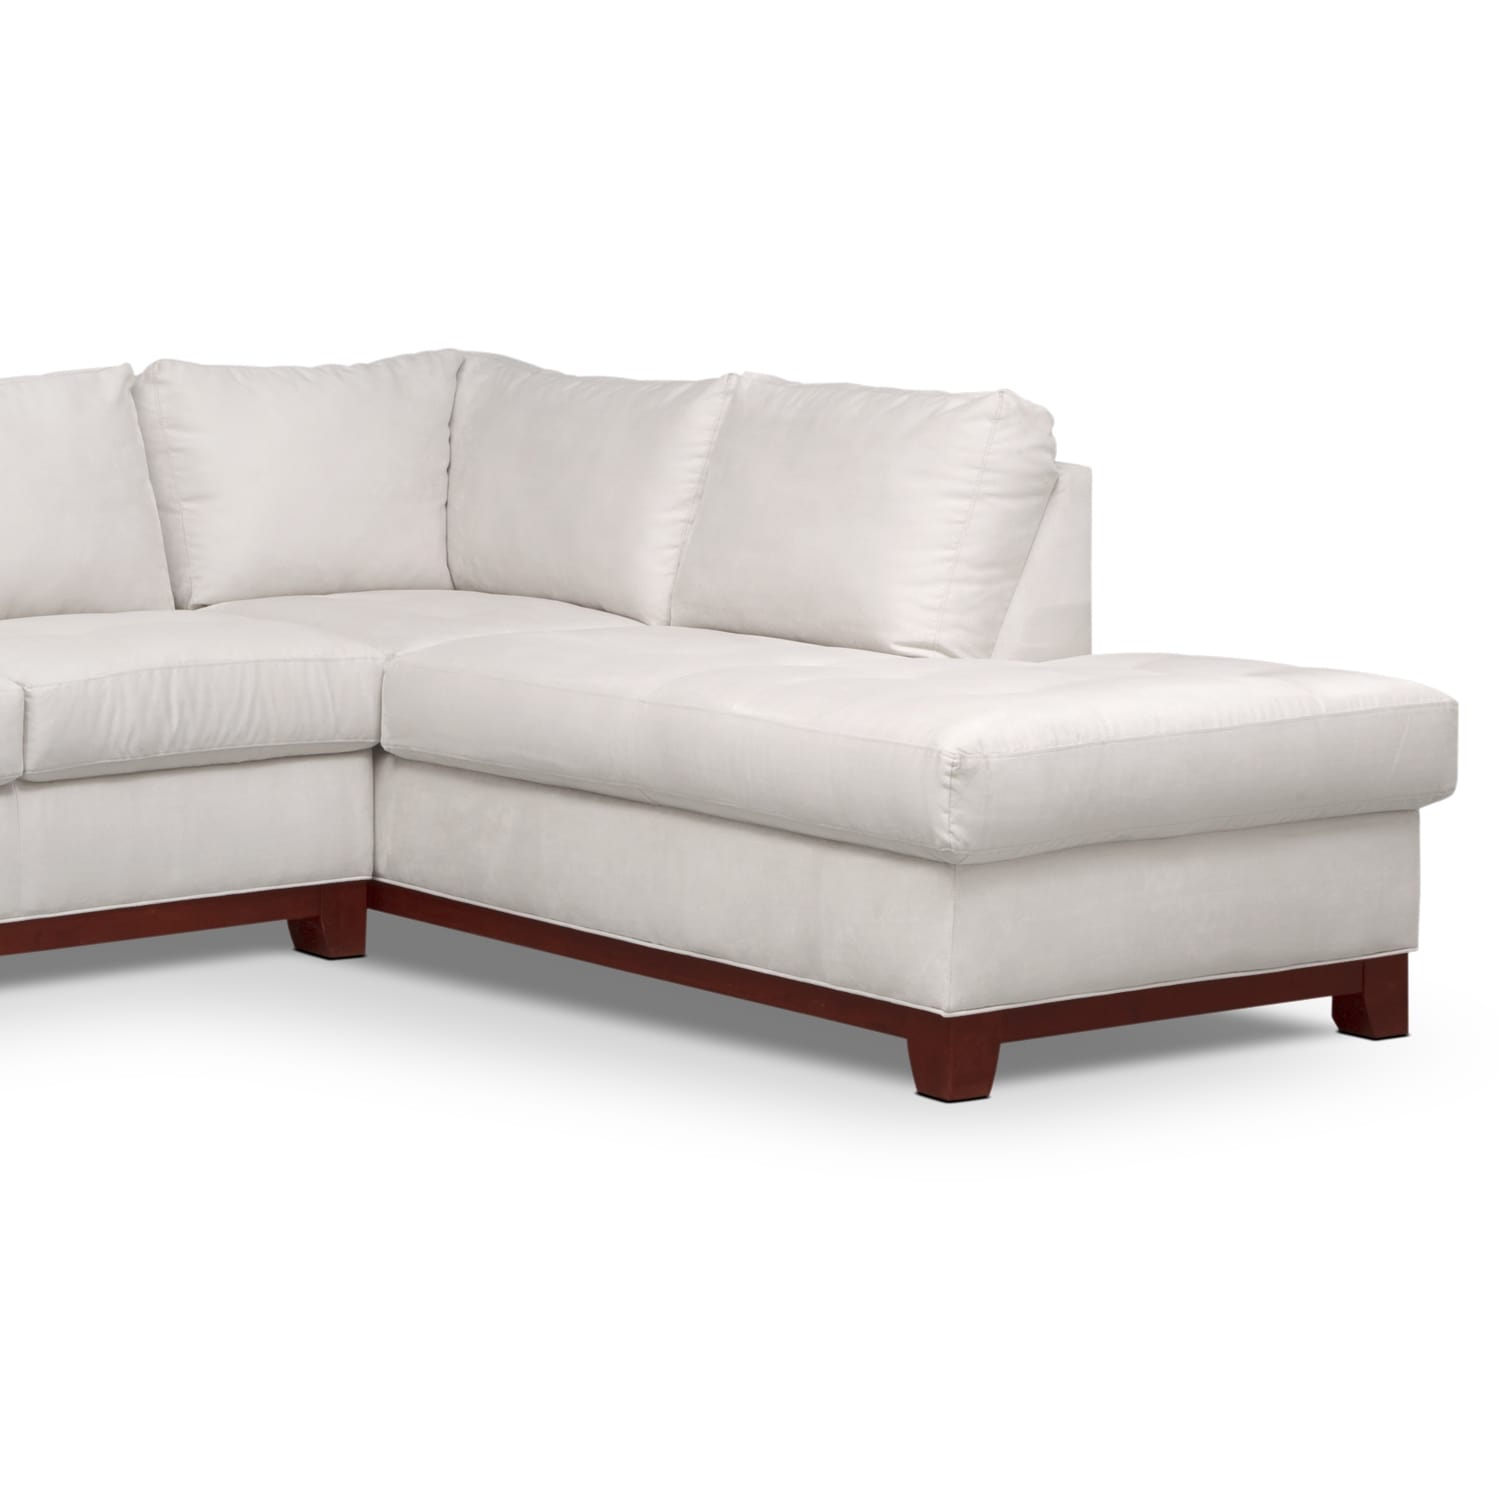 Soho 2 Piece Sectional with Right Facing Chaise Cement